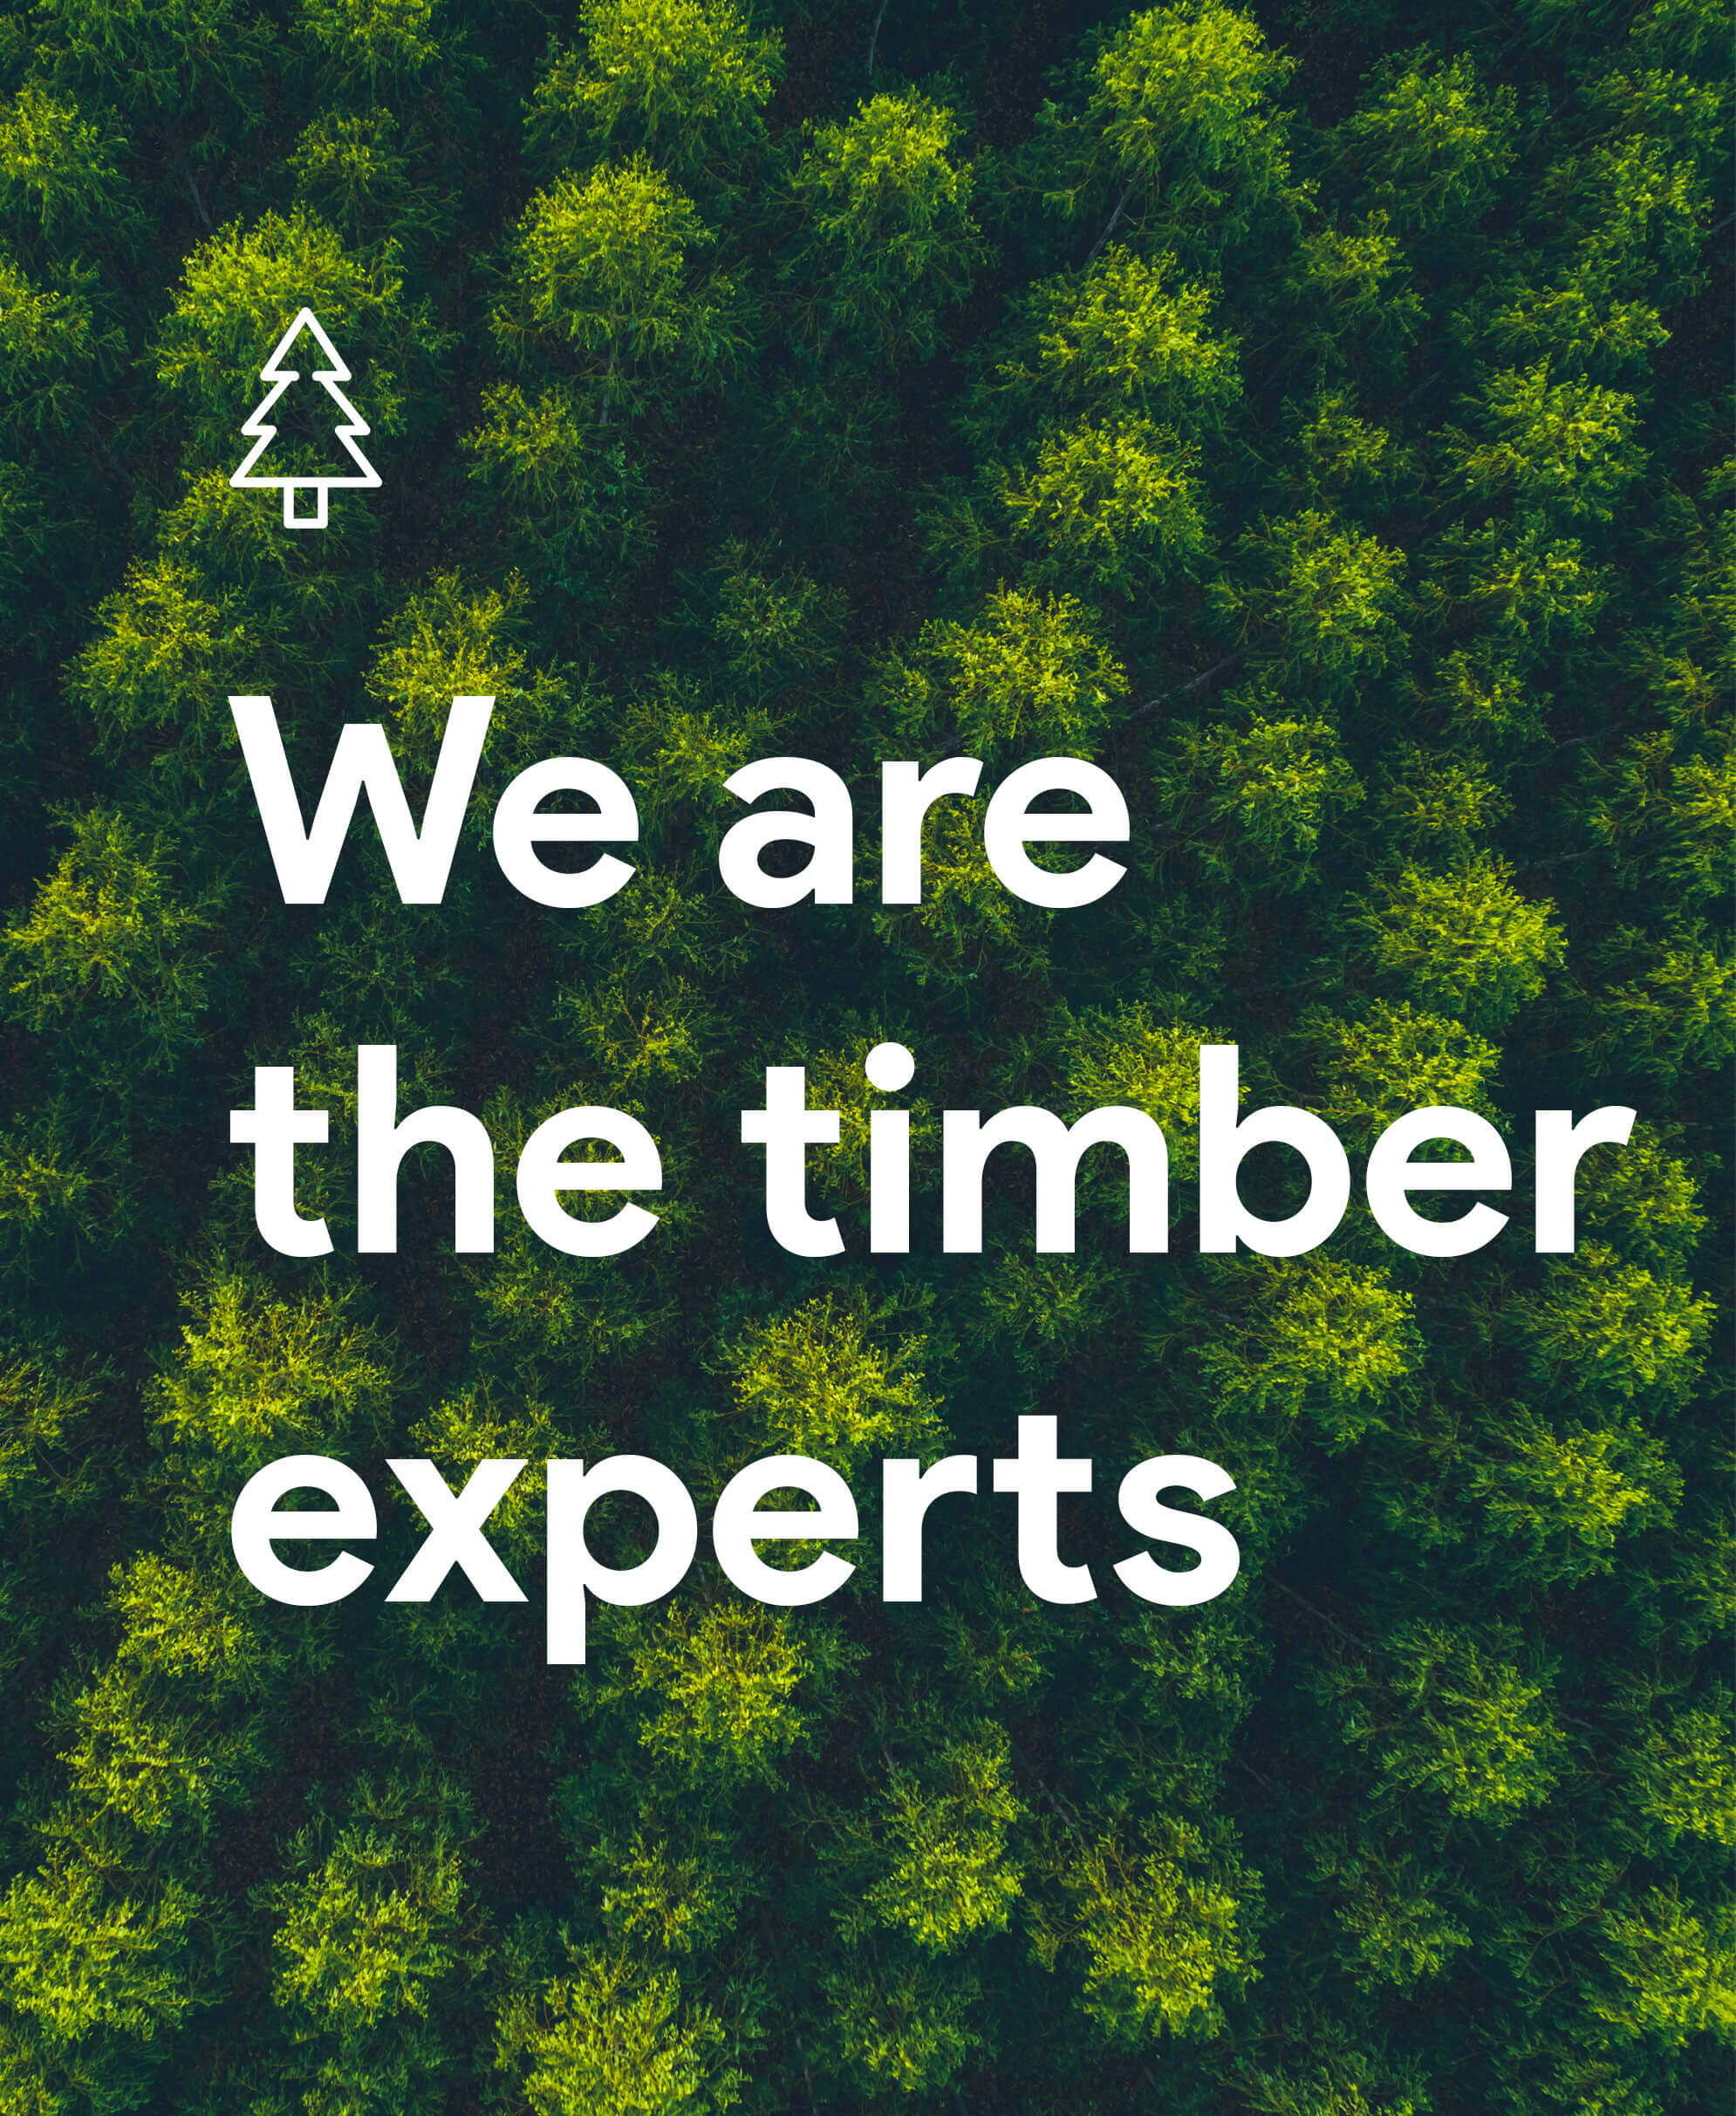 We are the timber experts